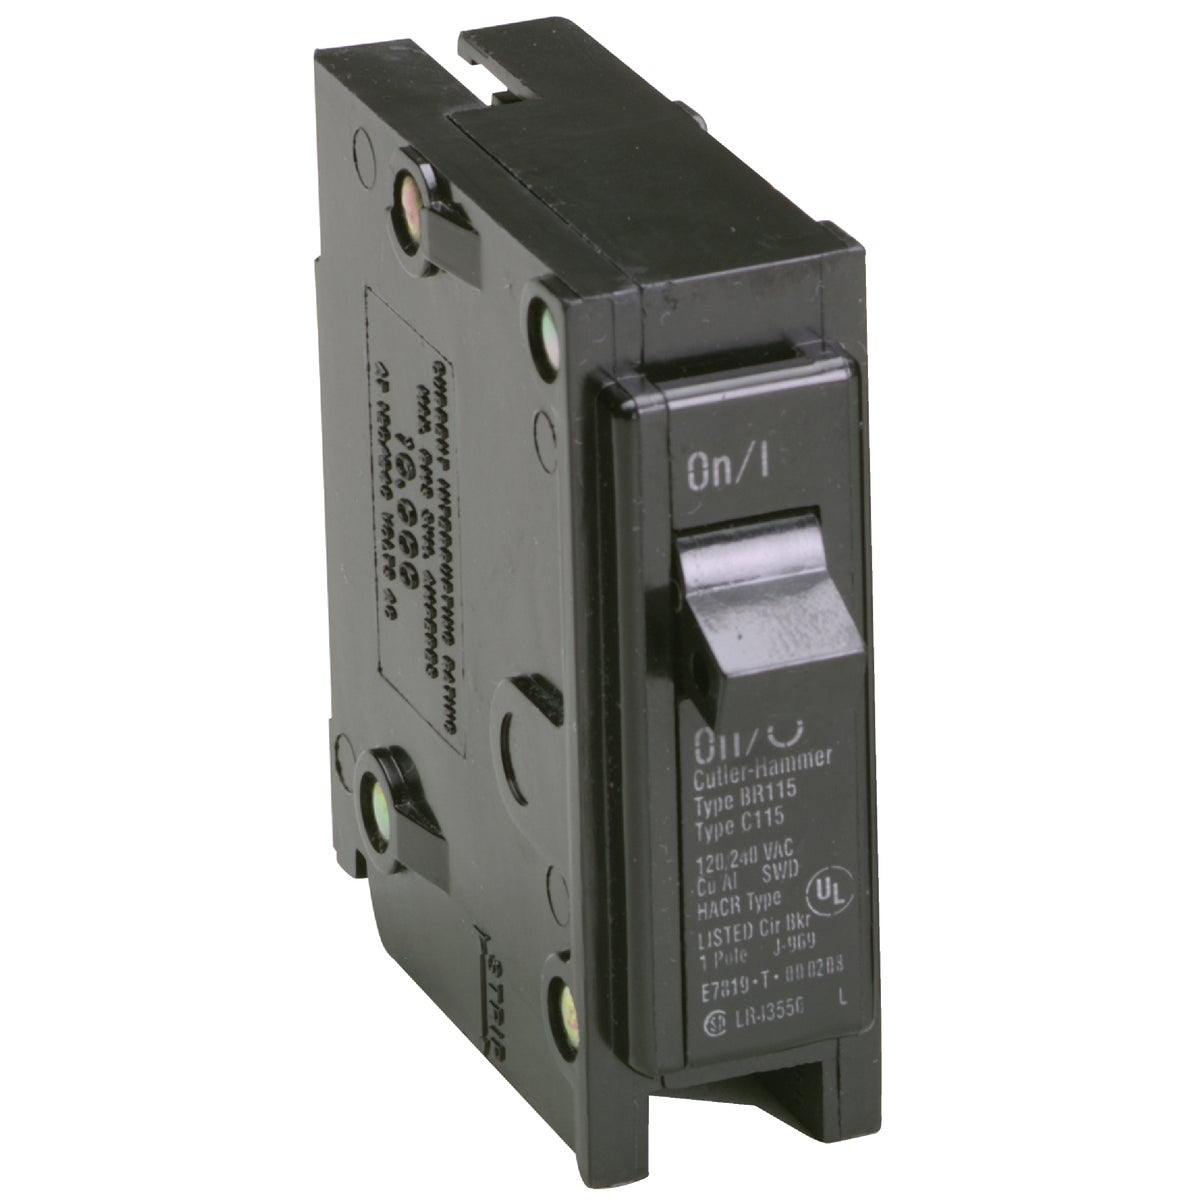 30A SP CIRCUIT BREAKER - BR130 by Eaton Corporation